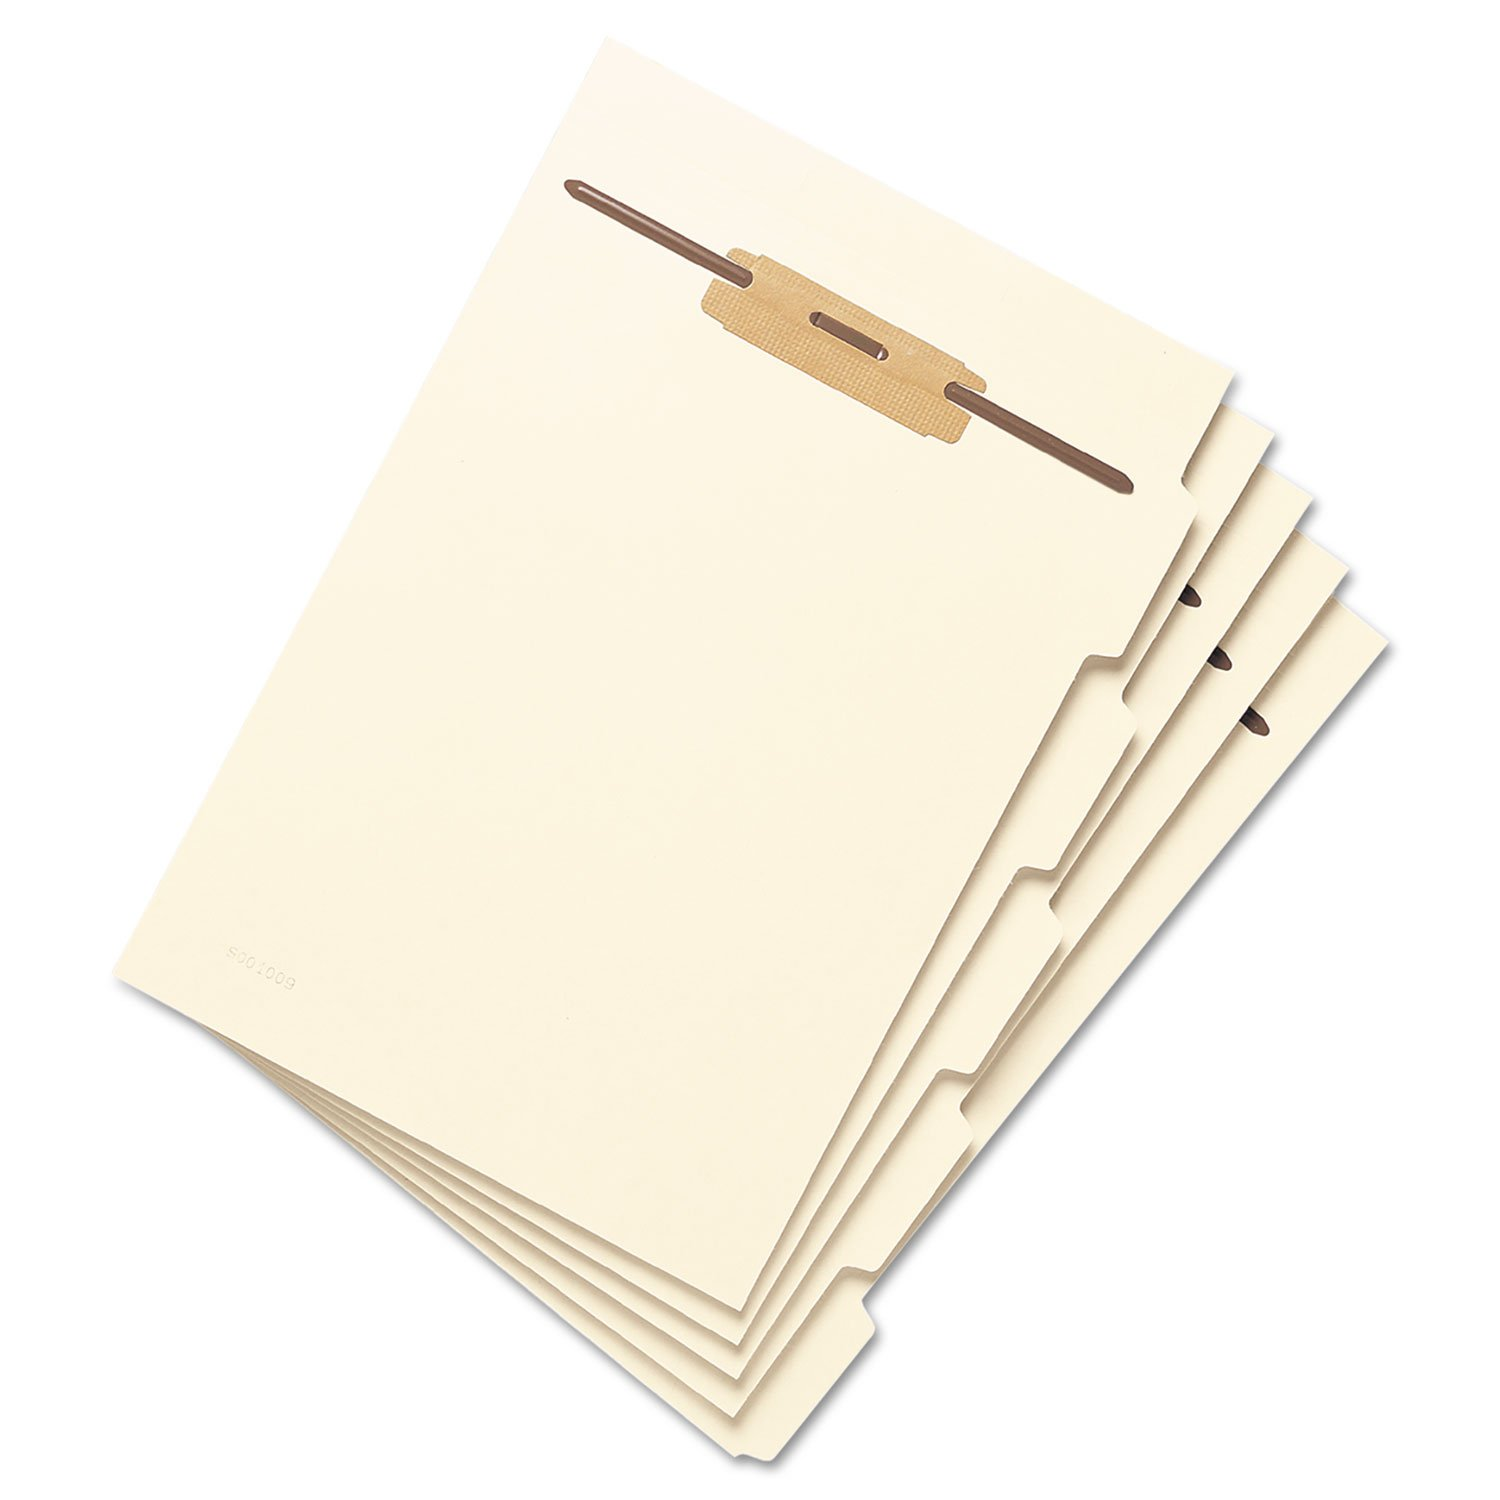 SMD35605 - Smead 35605 Manila Folder Dividers with Fastener